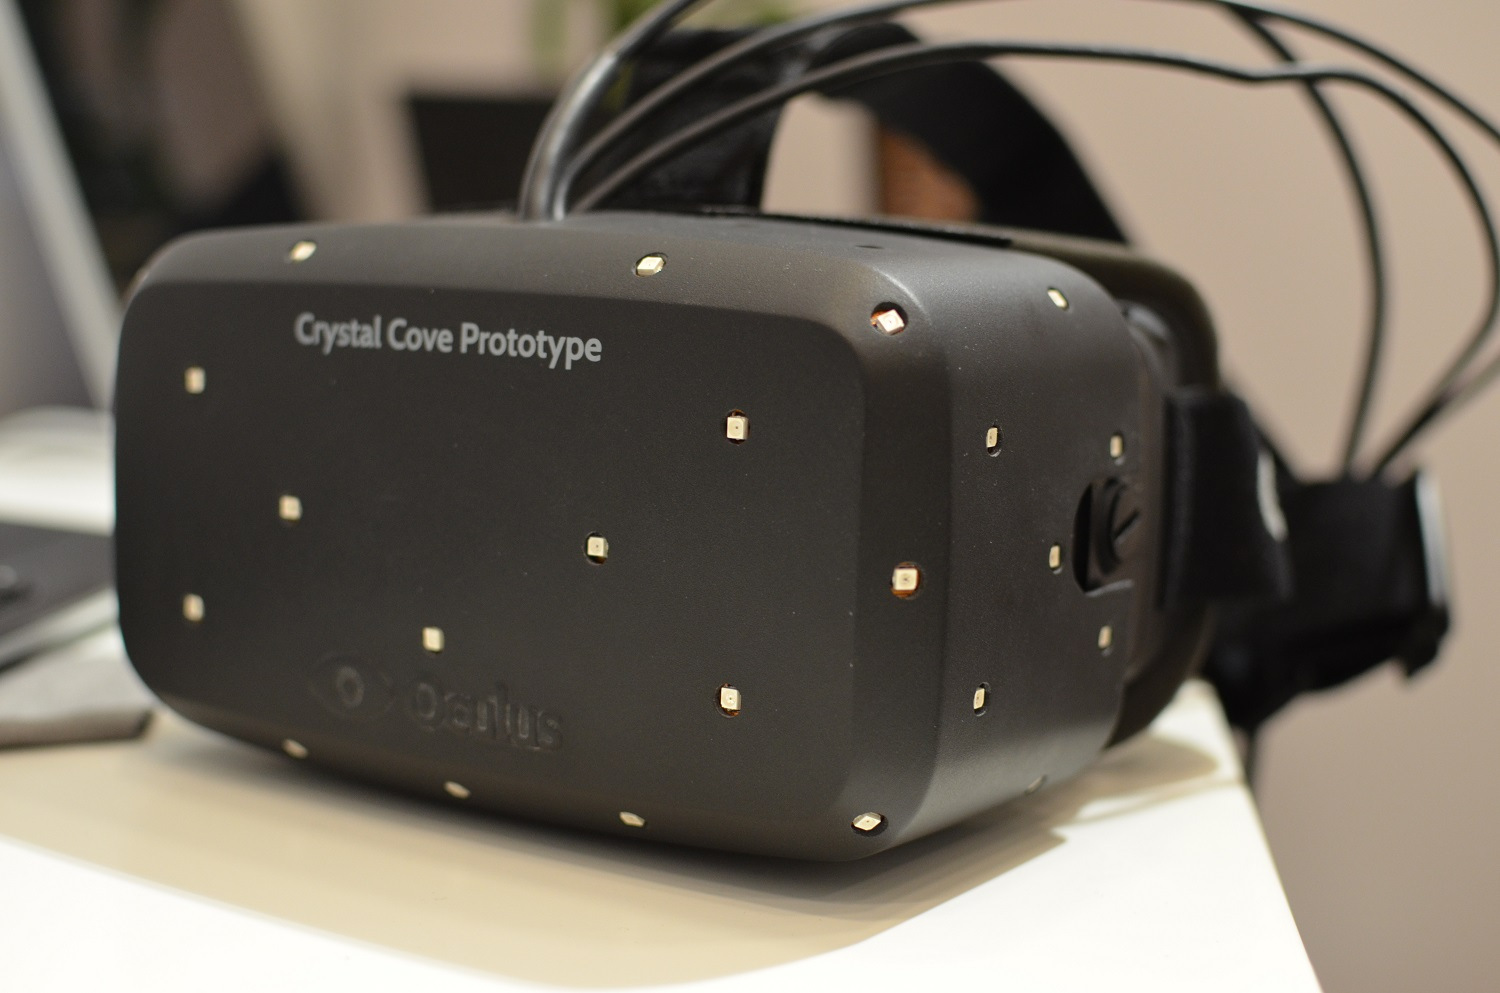 oculus-rift-crystal-cove-prototype-ces-2014-awards